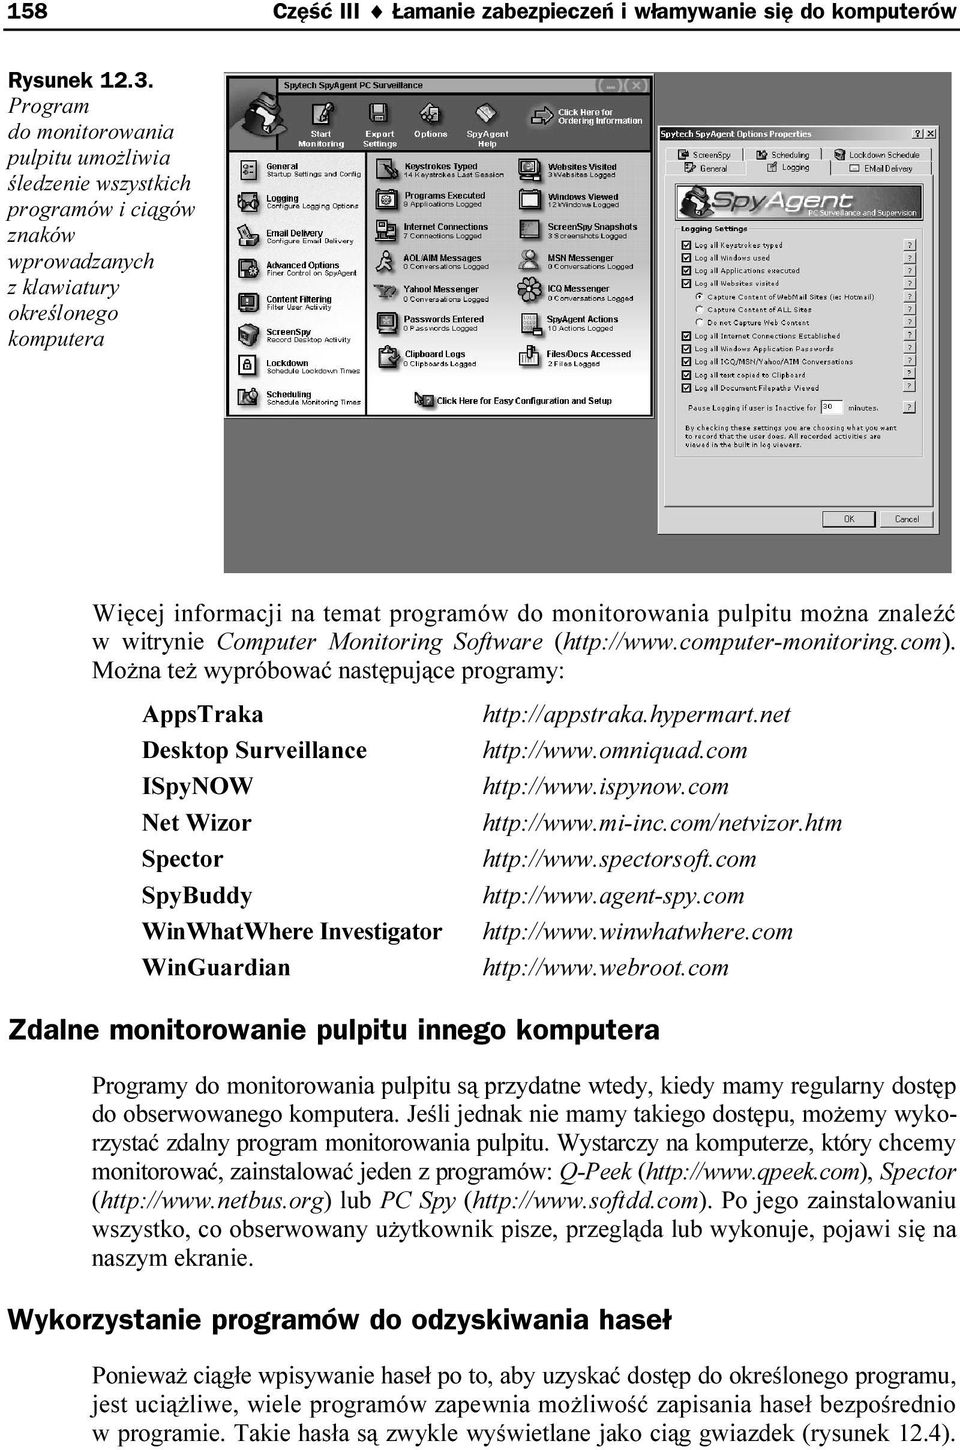 pulpitu można znaleźć w witrynie Computer Monitoring Software (http://www.computer-monitoring.com).